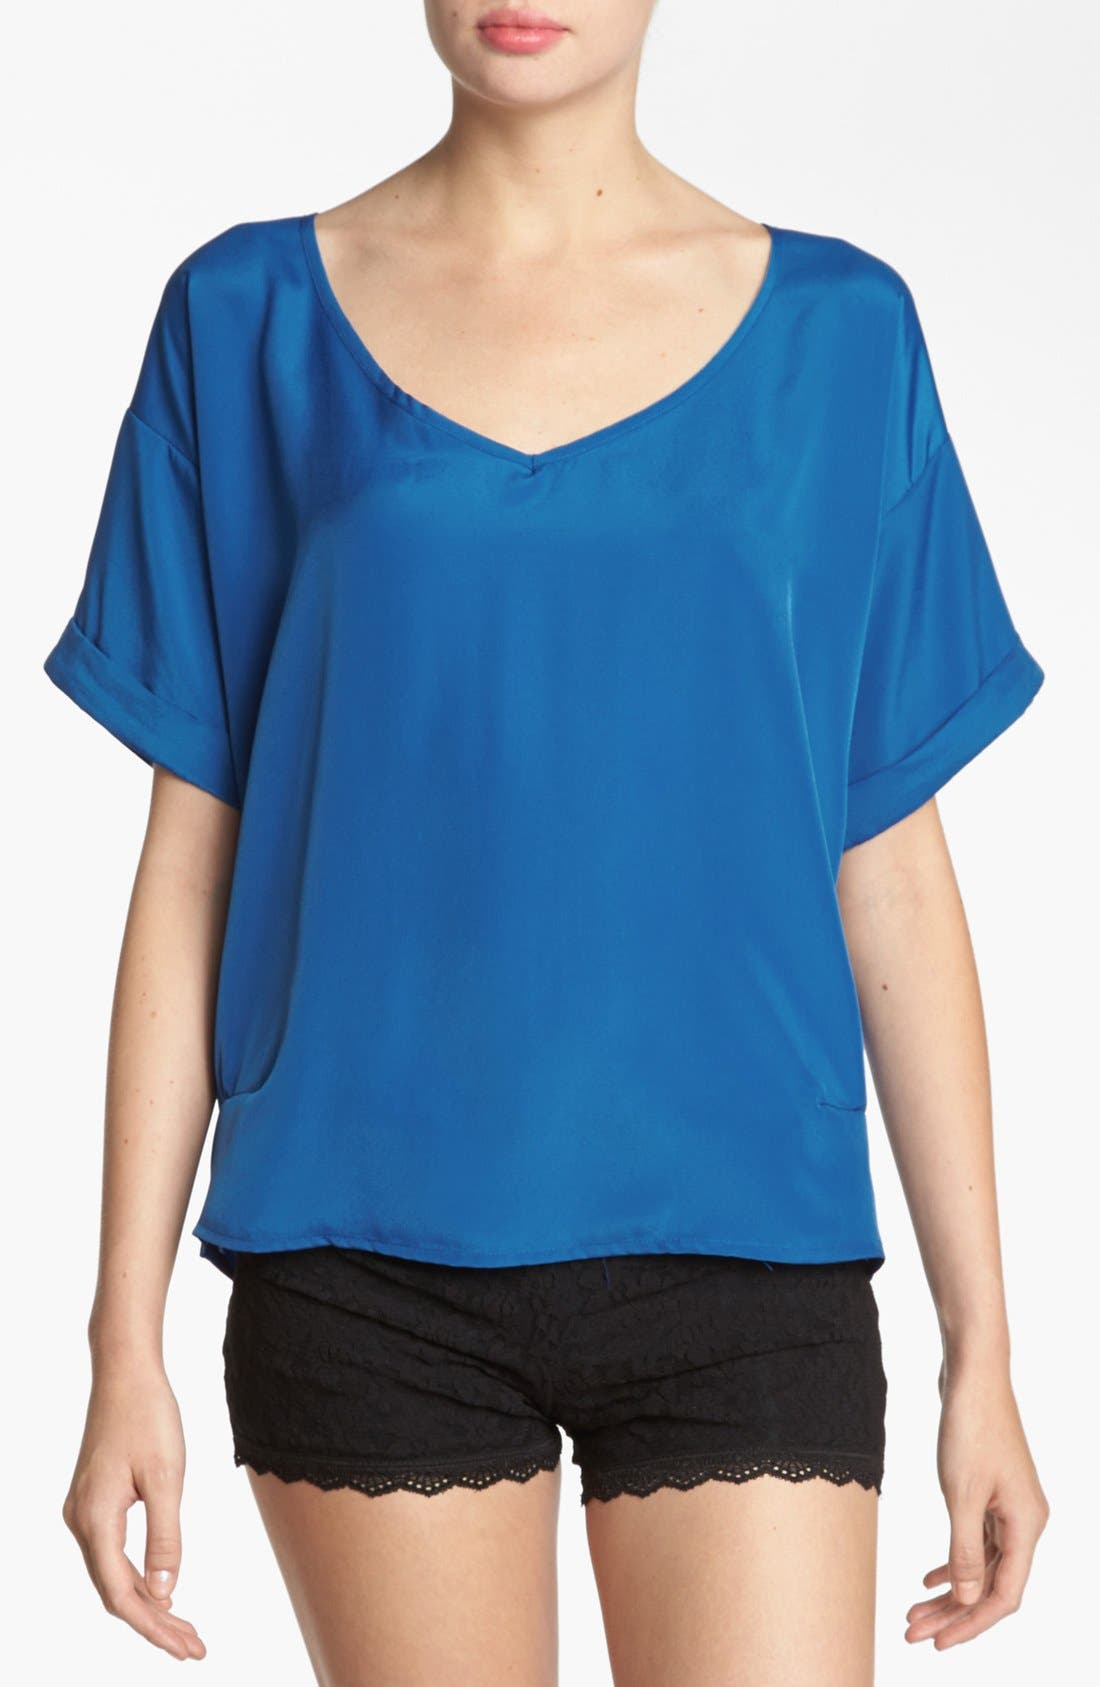 Alternate Image 1 Selected - Like Mynded Back Cutout Top